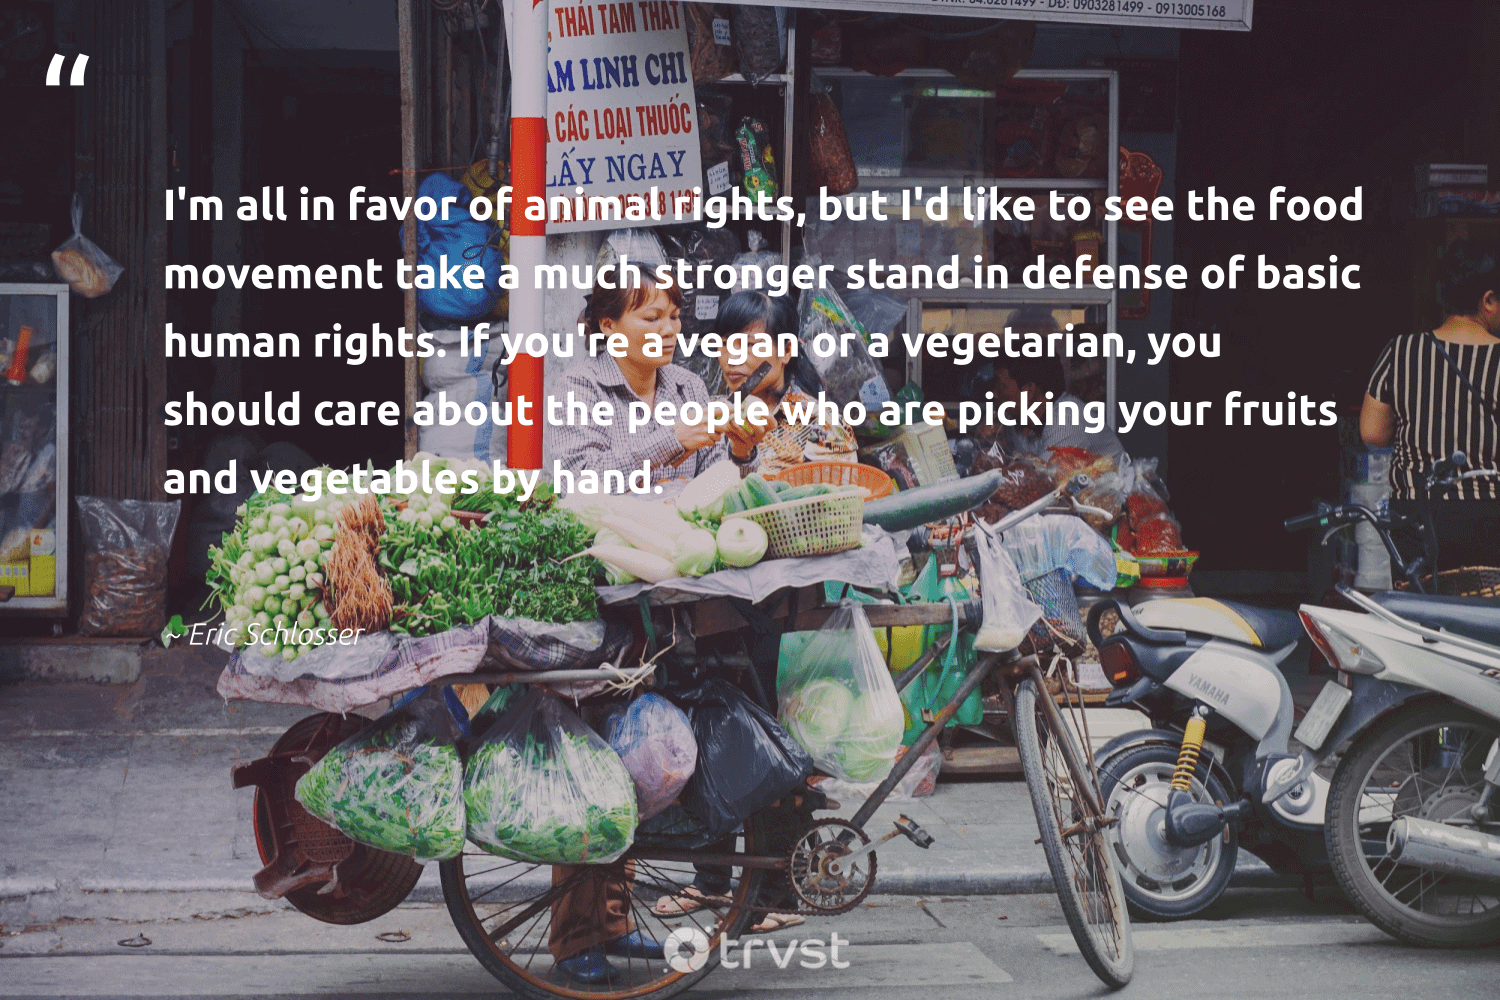 """""""I'm all in favor of animal rights, but I'd like to see the food movement take a much stronger stand in defense of basic human rights. If you're a vegan or a vegetarian, you should care about the people who are picking your fruits and vegetables by hand.""""  - Eric Schlosser #trvst #quotes #vegan #animal #humanrights #food #vegetarian #whatveganseat #animallovers #green #greenliving #collectiveaction"""